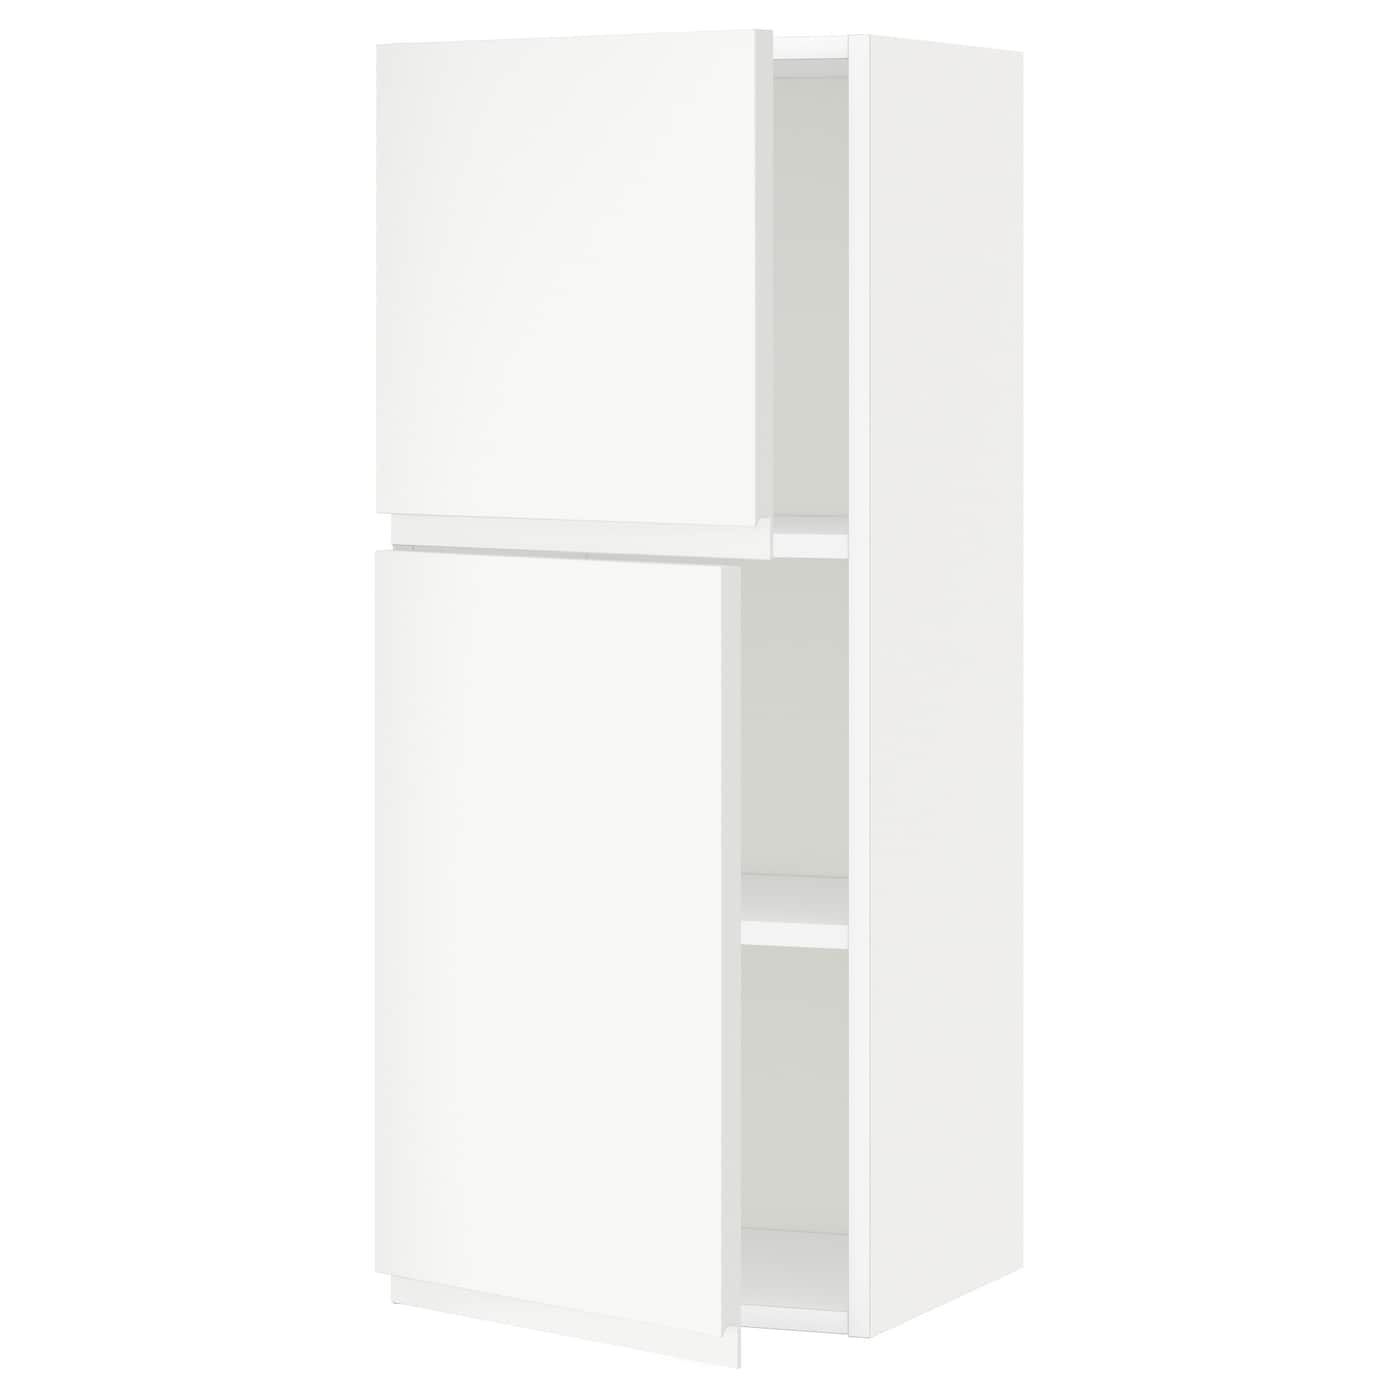 Metod Wall Cabinet With 2 Doors White Voxtorp High Gloss: METOD Wall Cabinet With Shelves/2 Doors White/voxtorp Matt